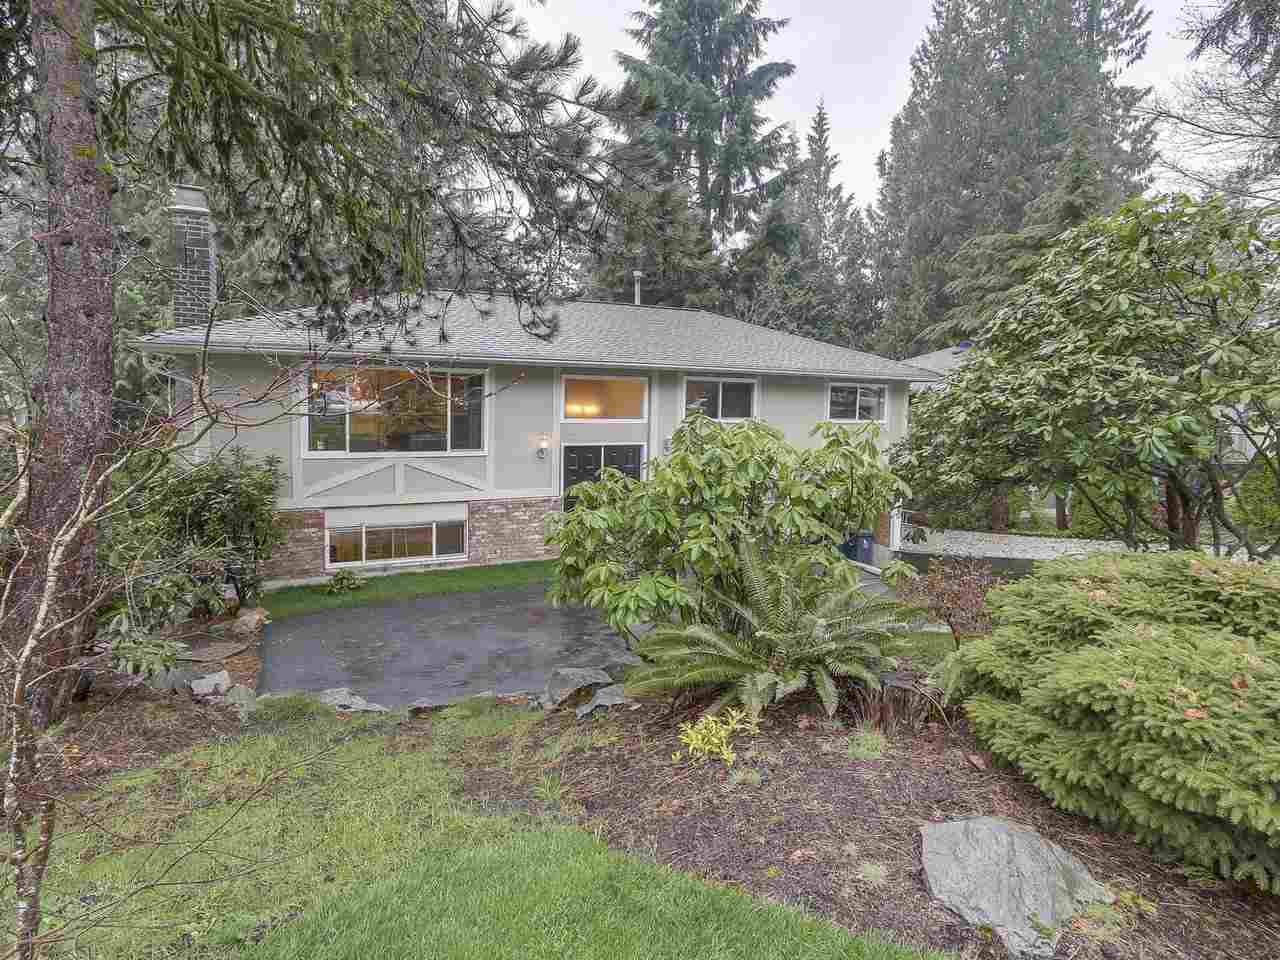 Perfect family home nestled in a peaceful neighbourhood. This gem has everything! Spacious kitchen open to both the living & dining areas plus 3 bedrooms & 2 bathrooms on the upper floor. Huge sun drenched deck off the dining area is perfect for entertaining! Recent upgrades include new roof, landscaping, new washer/dryer & updated bath in 1 bedroom nanny suite. Close to Blueridge Park & Elementary with CMHC bike trails at your doorstep! Open Sat/Sun April 21/22 2-4pm. Don't miss this one!